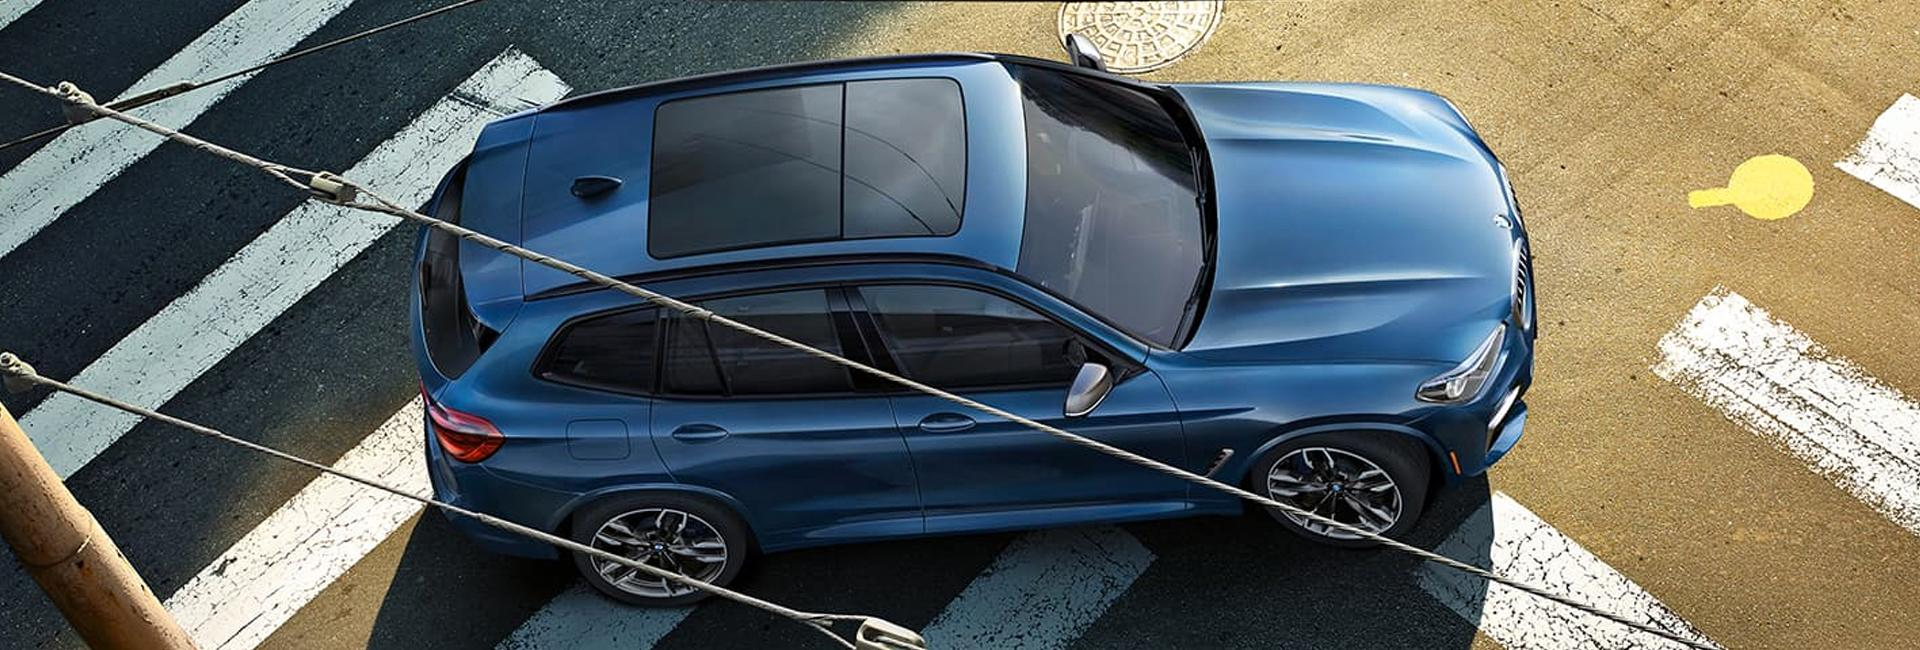 Aerial view of the 2021 BMW X3